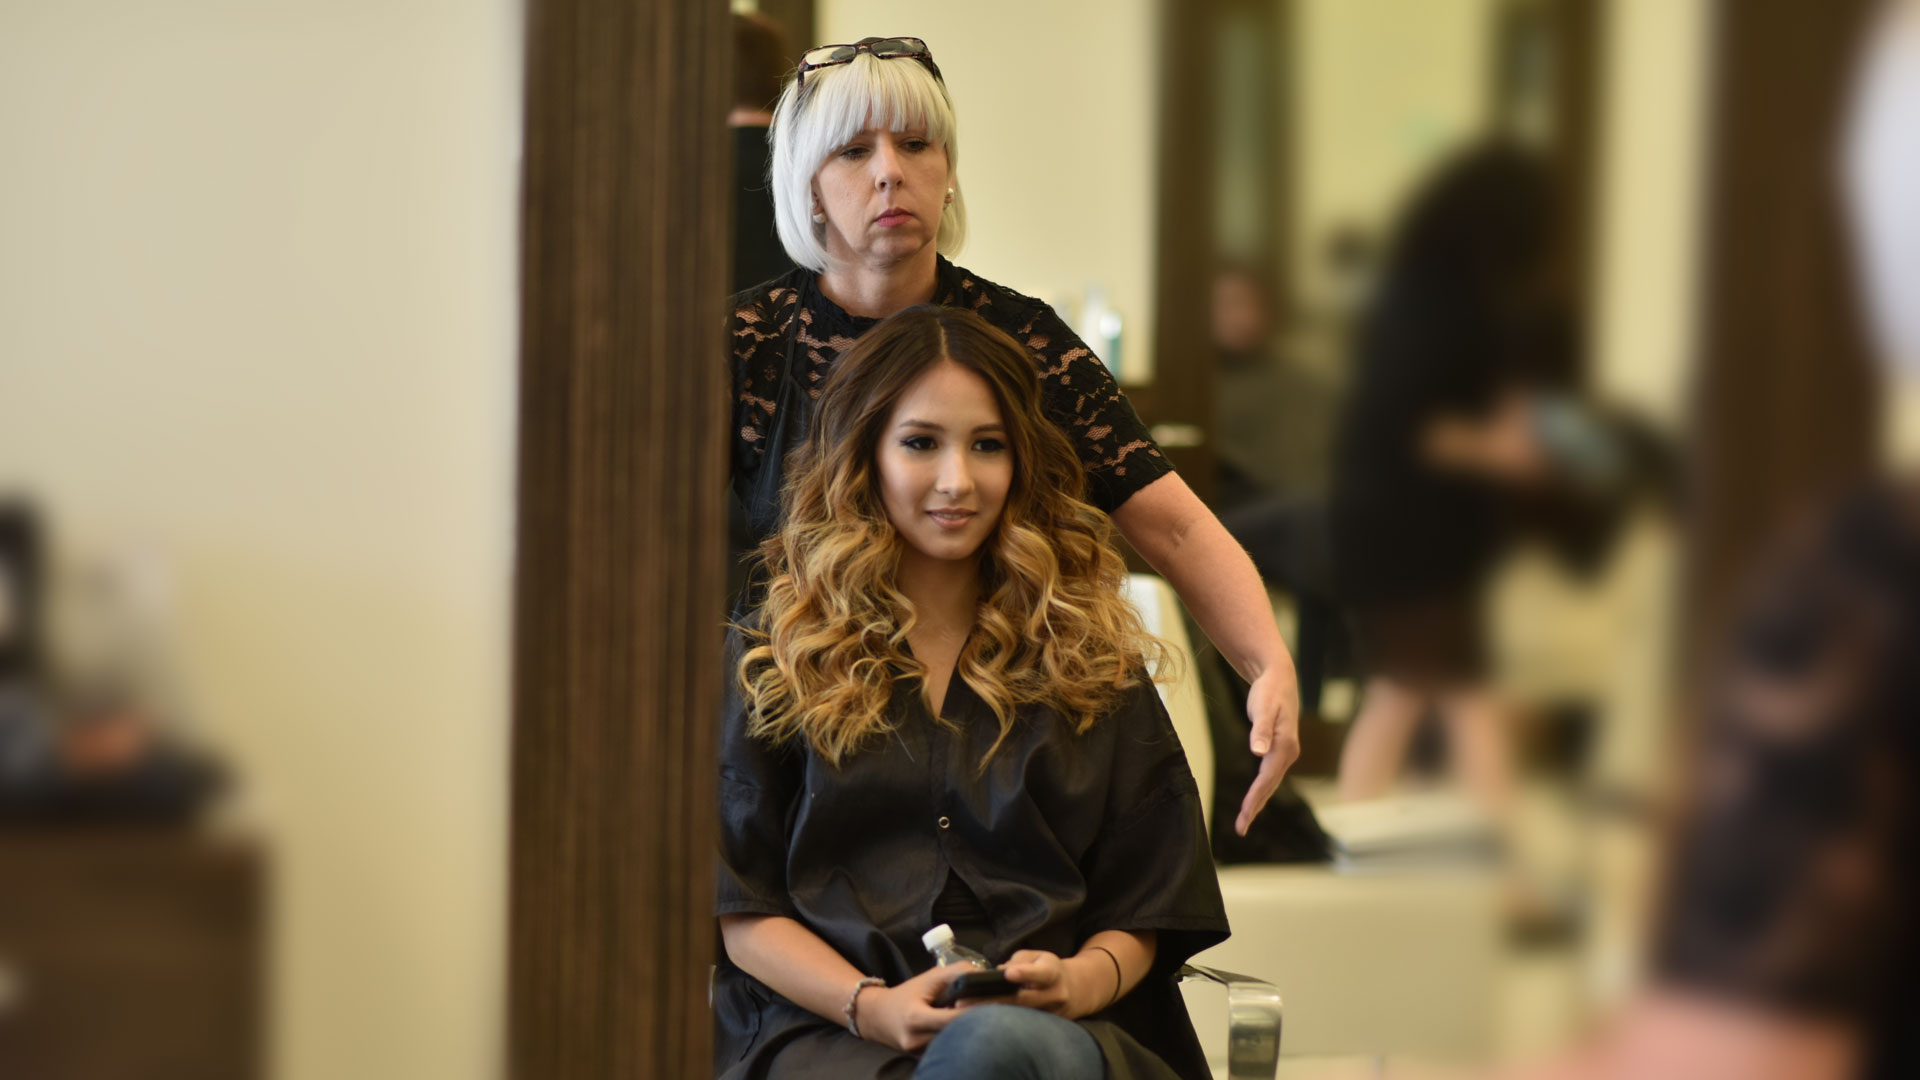 Aalam the salon plano top hair salon frisco best upscale for Aalam the salon reviews